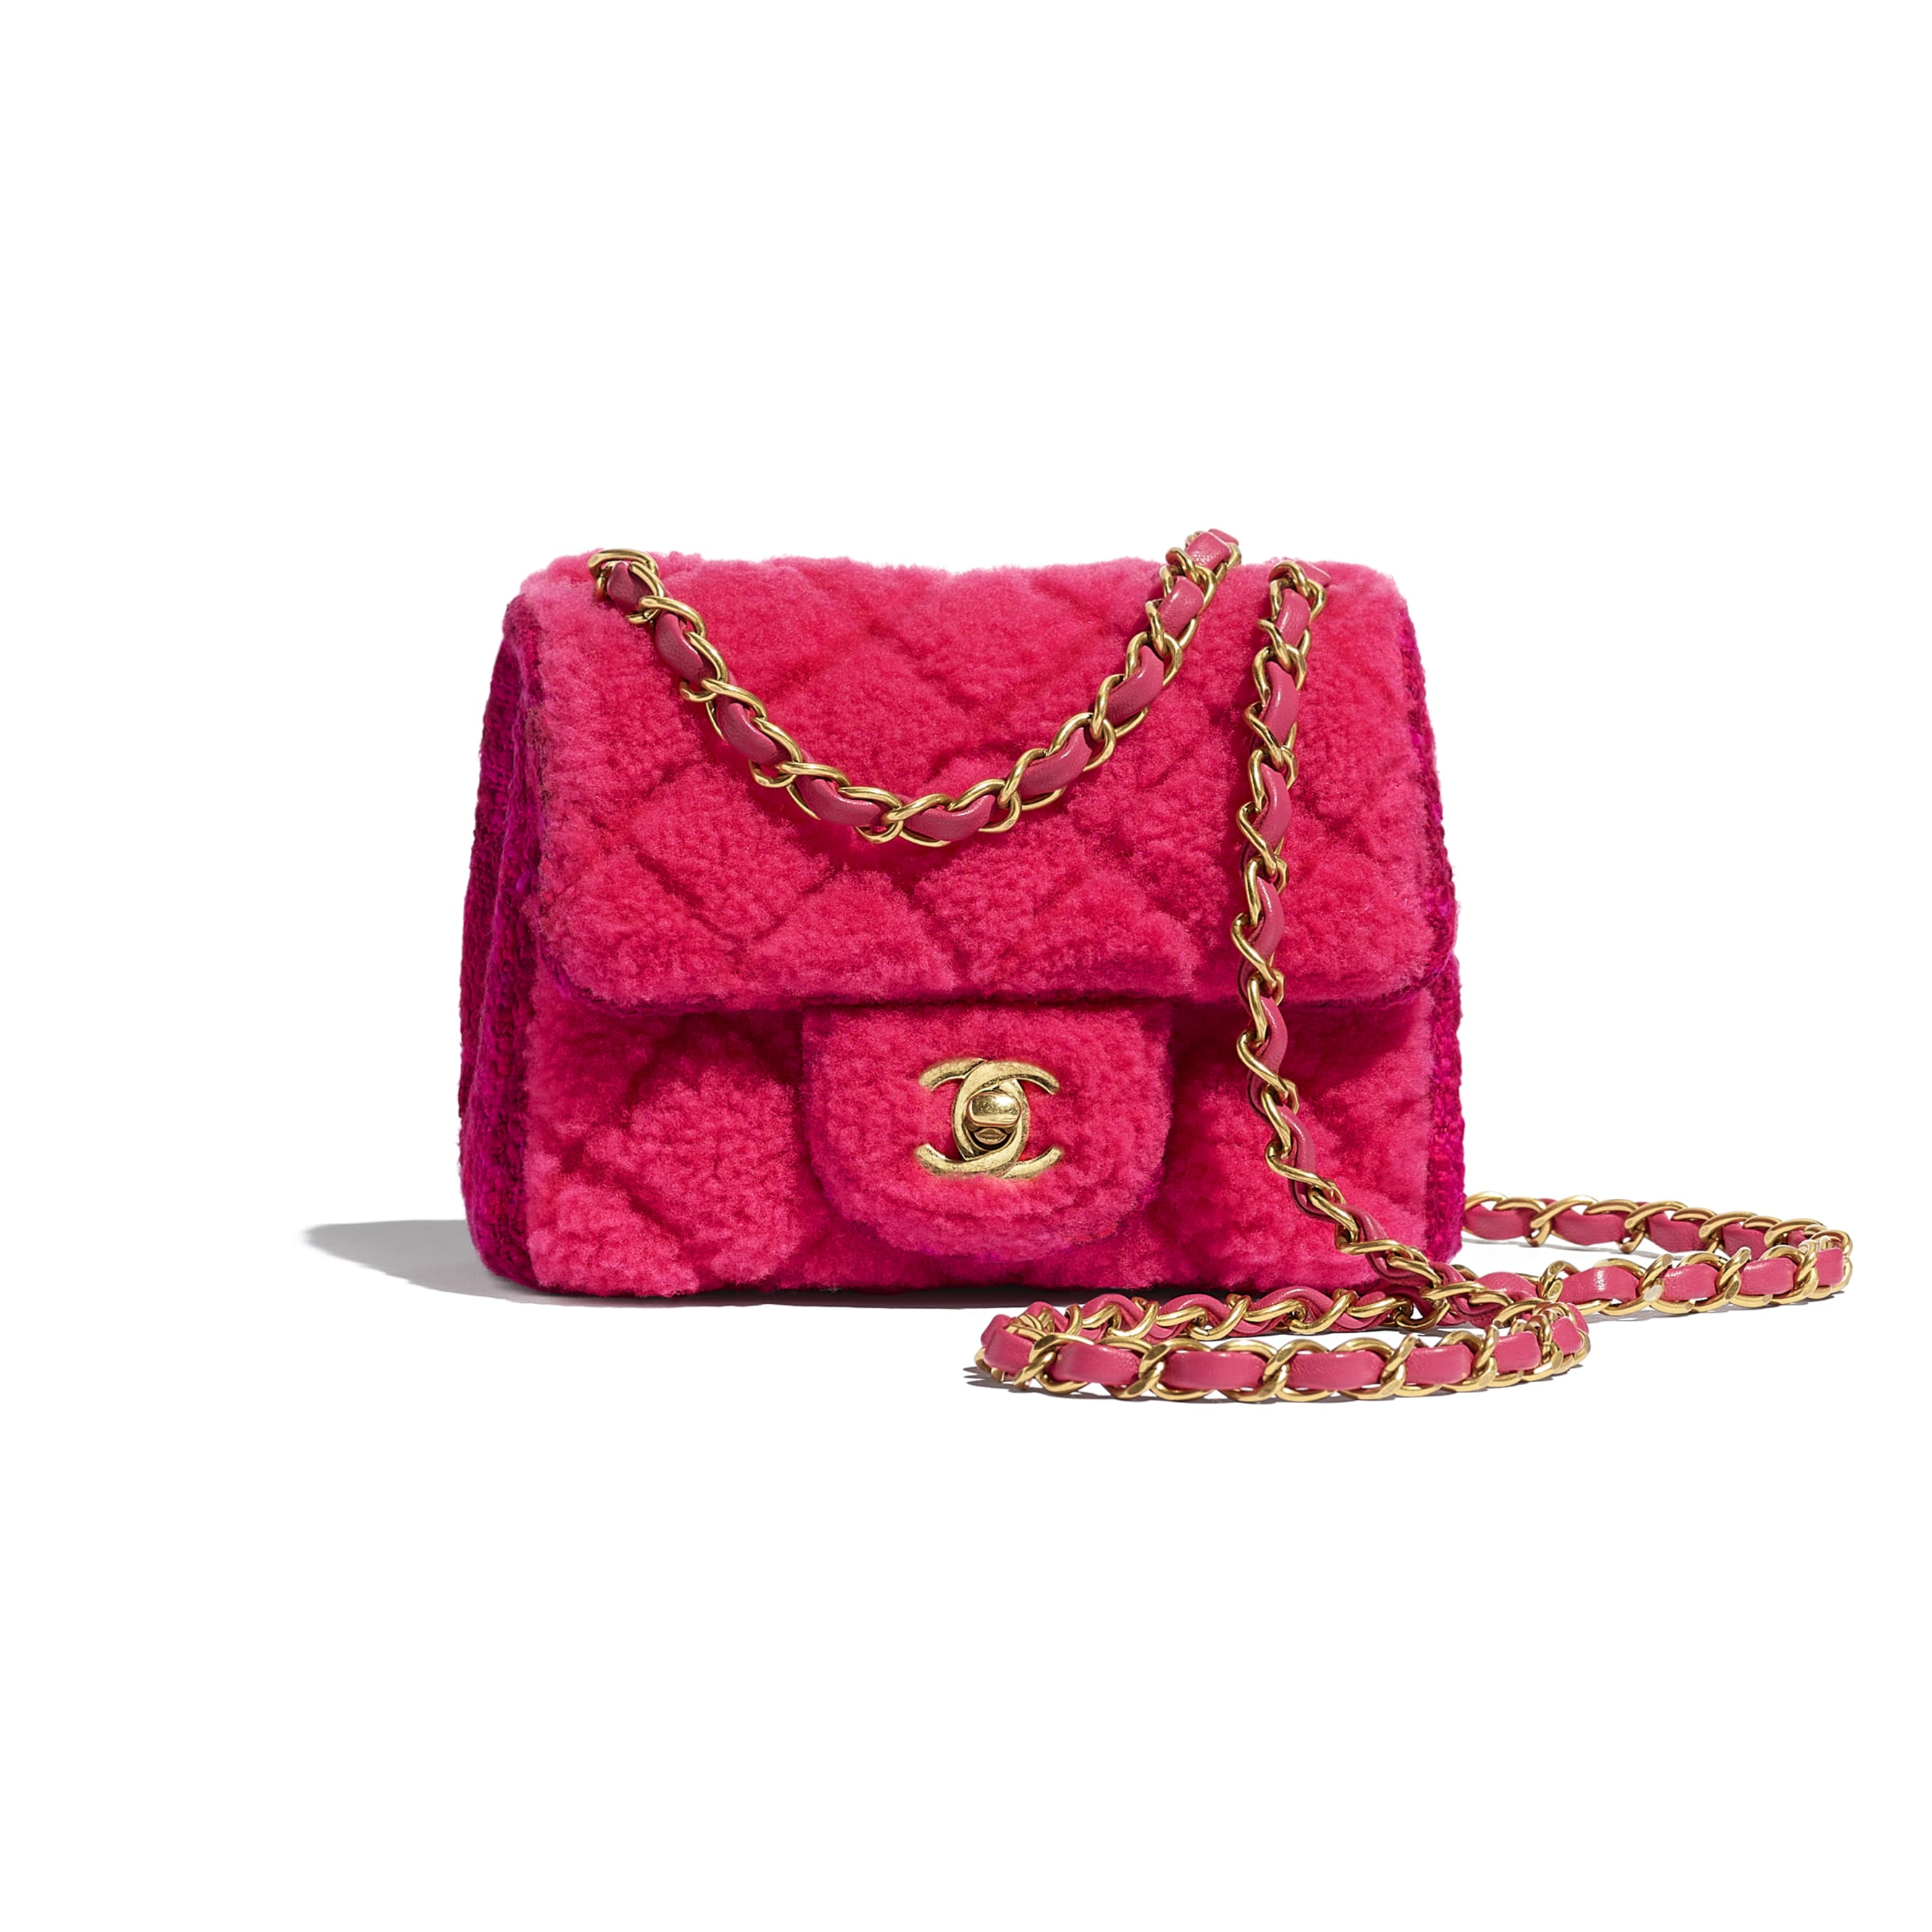 Small Flap Bag - Pink, Burgundy & Red - Shearling Sheepskin, Tweed & Gold-Tone Metal - CHANEL - Default view - see standard sized version